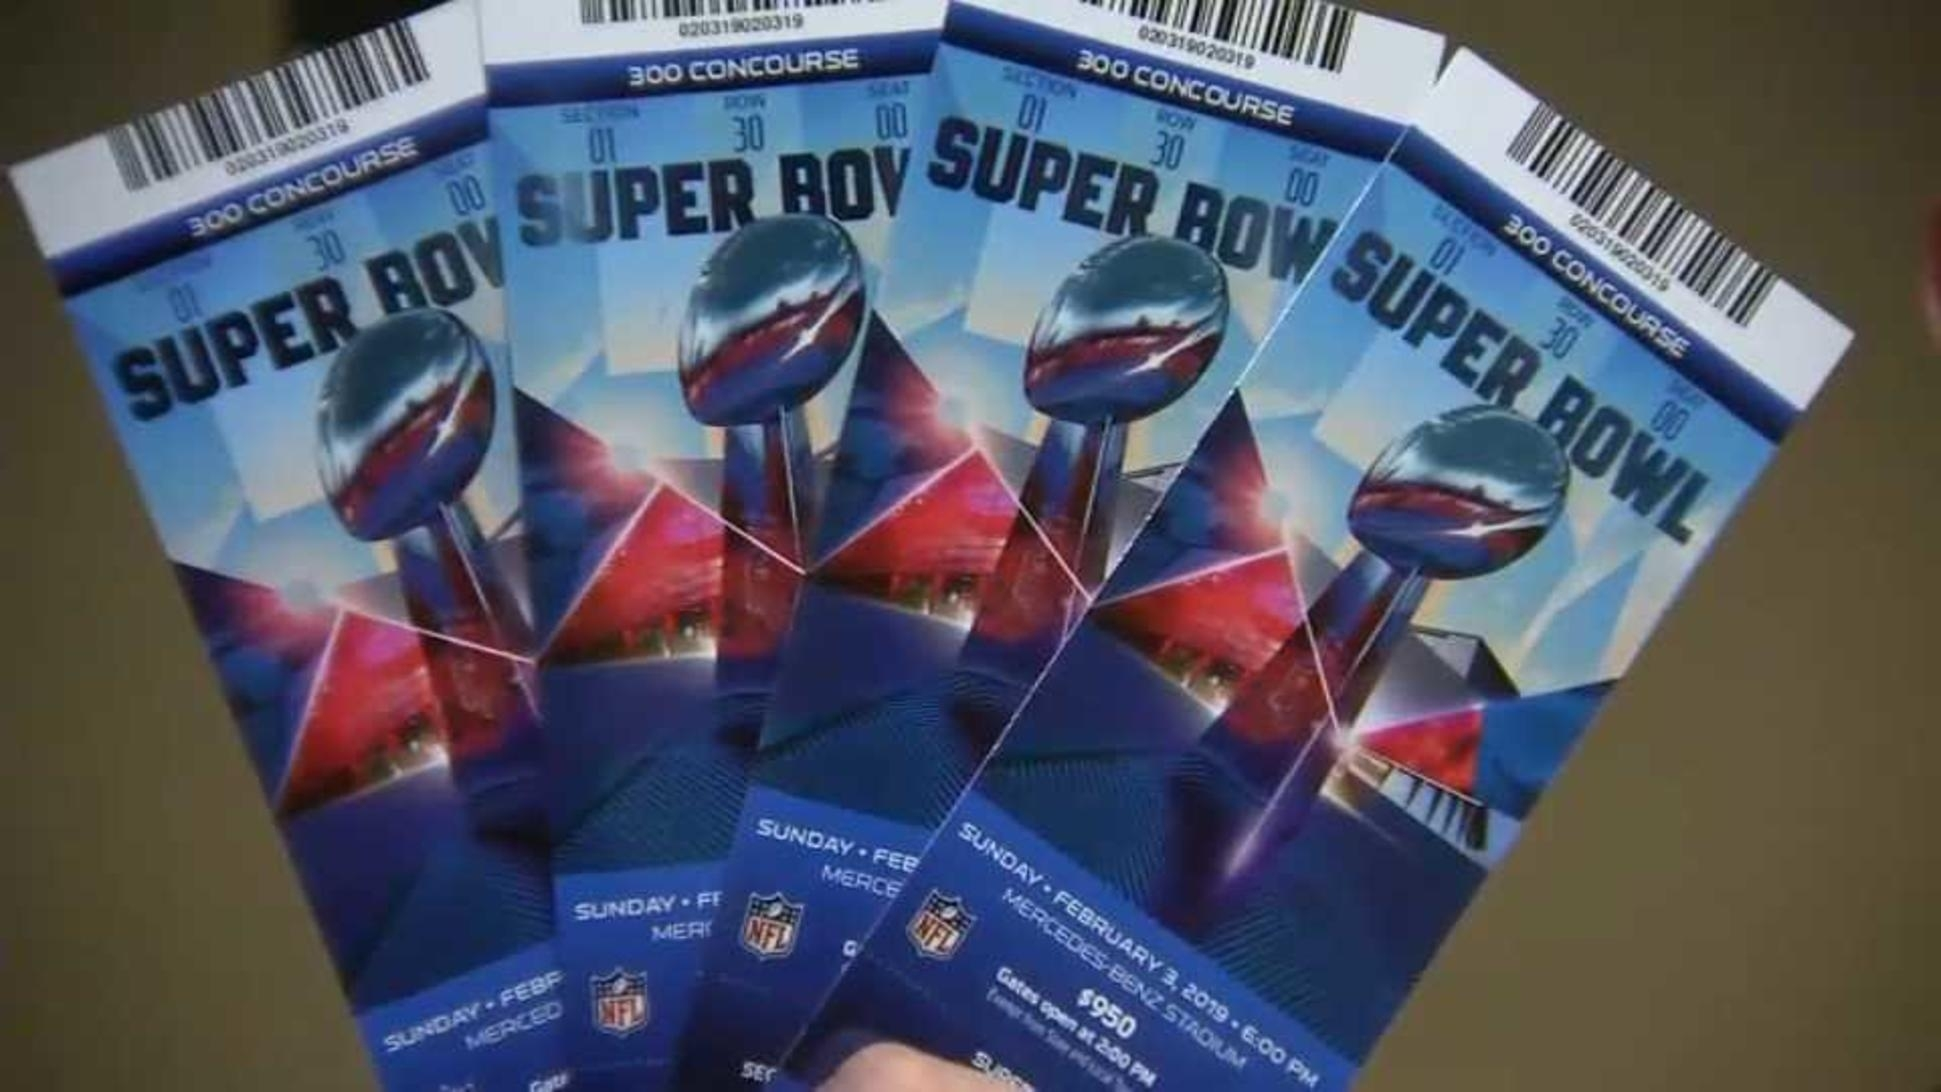 Super Bowl Liii: Find Out How Much A Last-Second Ticket Will with Super Bowl Liii Tickets